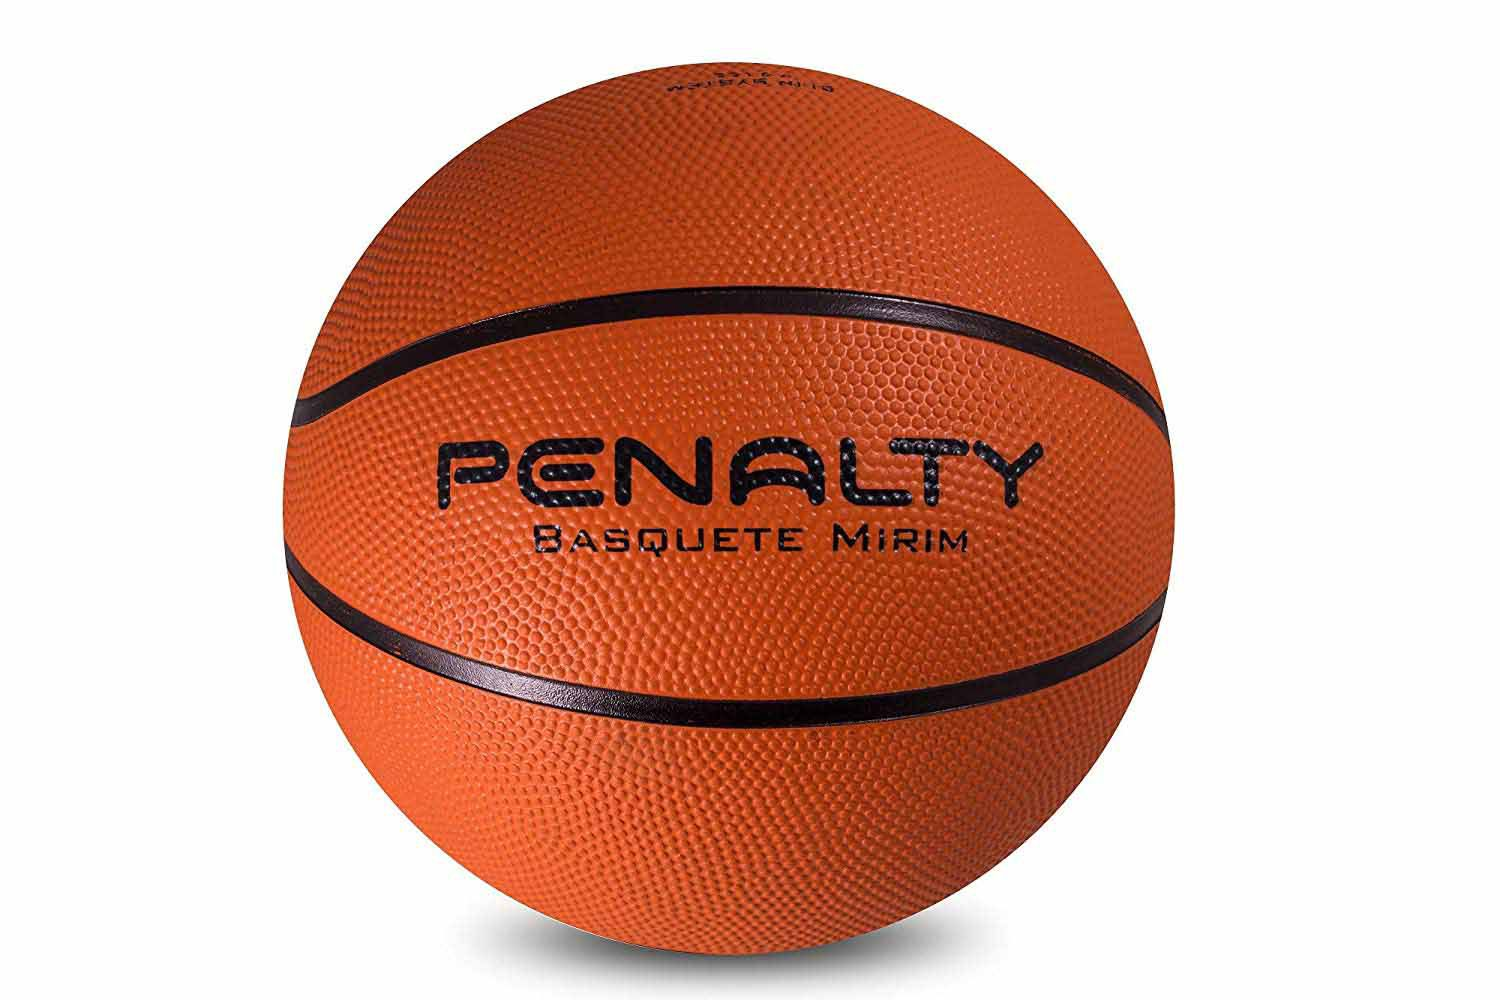 BOLA BASQUETE PENALTY MIRIM INFANTIL PLAYOFF 9 IX OFICIAL